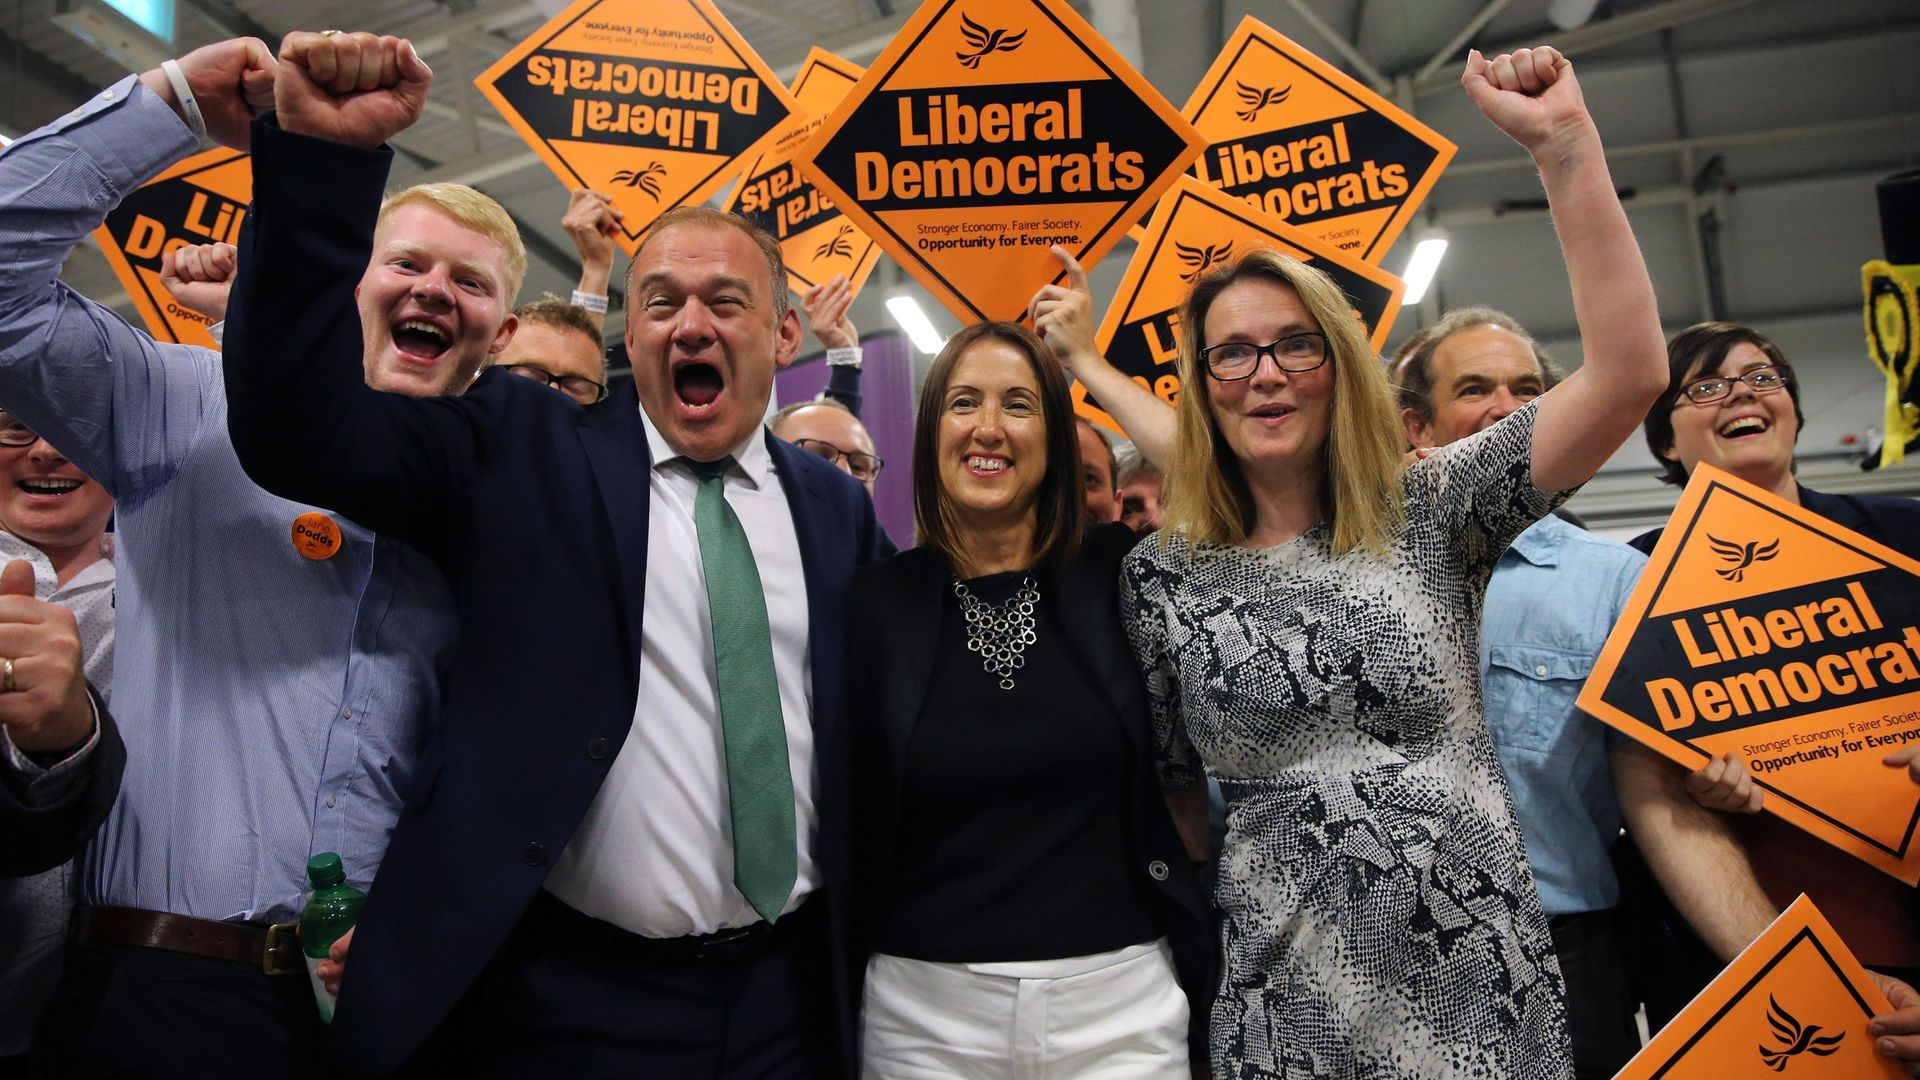 Ed Davey, now party leader, celebrates with Jane Dodds (C) and her team, after she won the Brecon and Radnorshire byelection in August 2019 - Credit: AFP via Getty Images